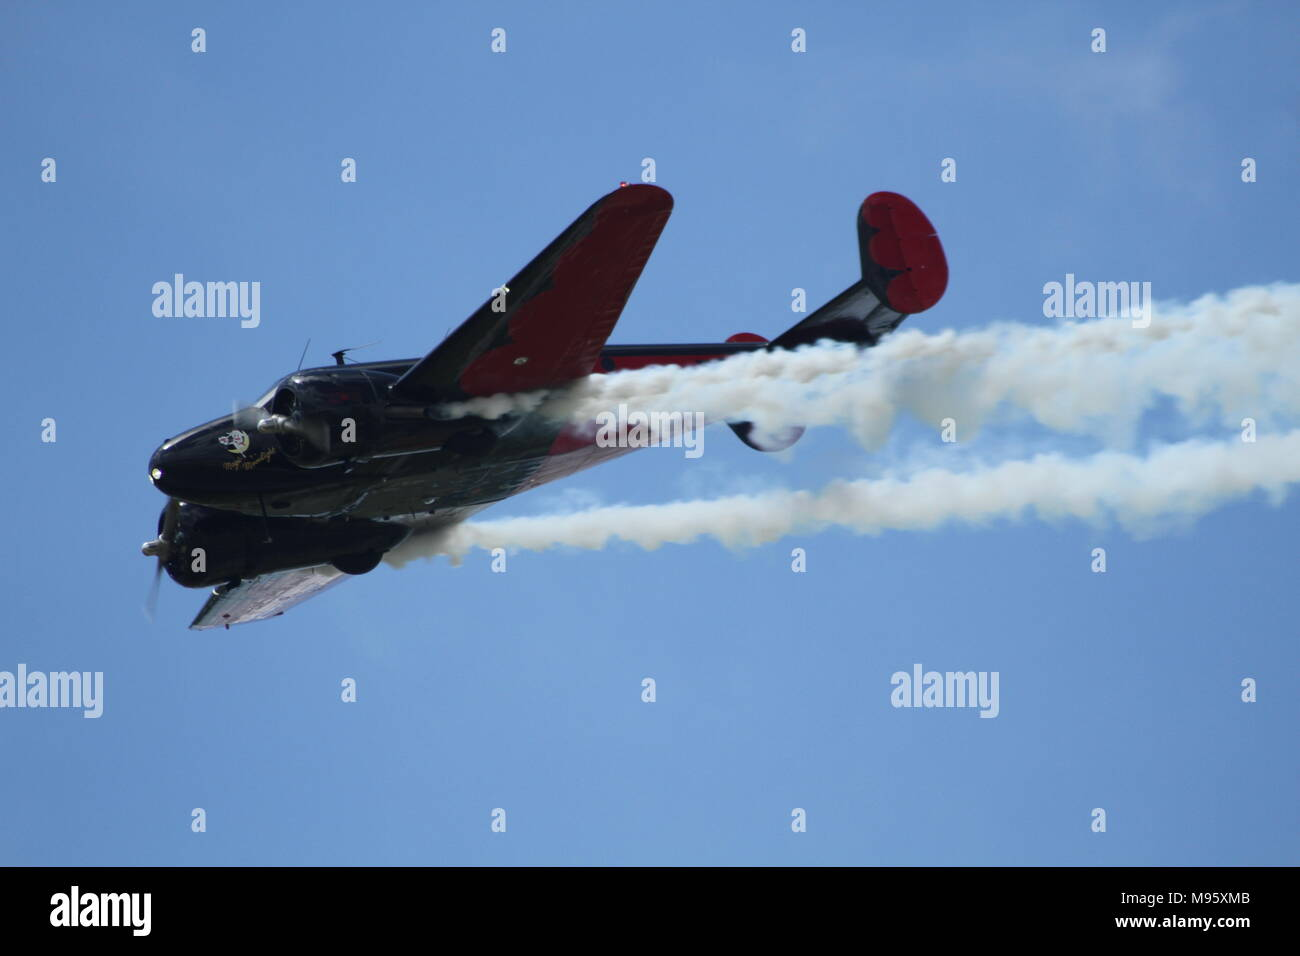 Beechcraft Model 18 performing an aerobatic show at an airshow - Stock Image